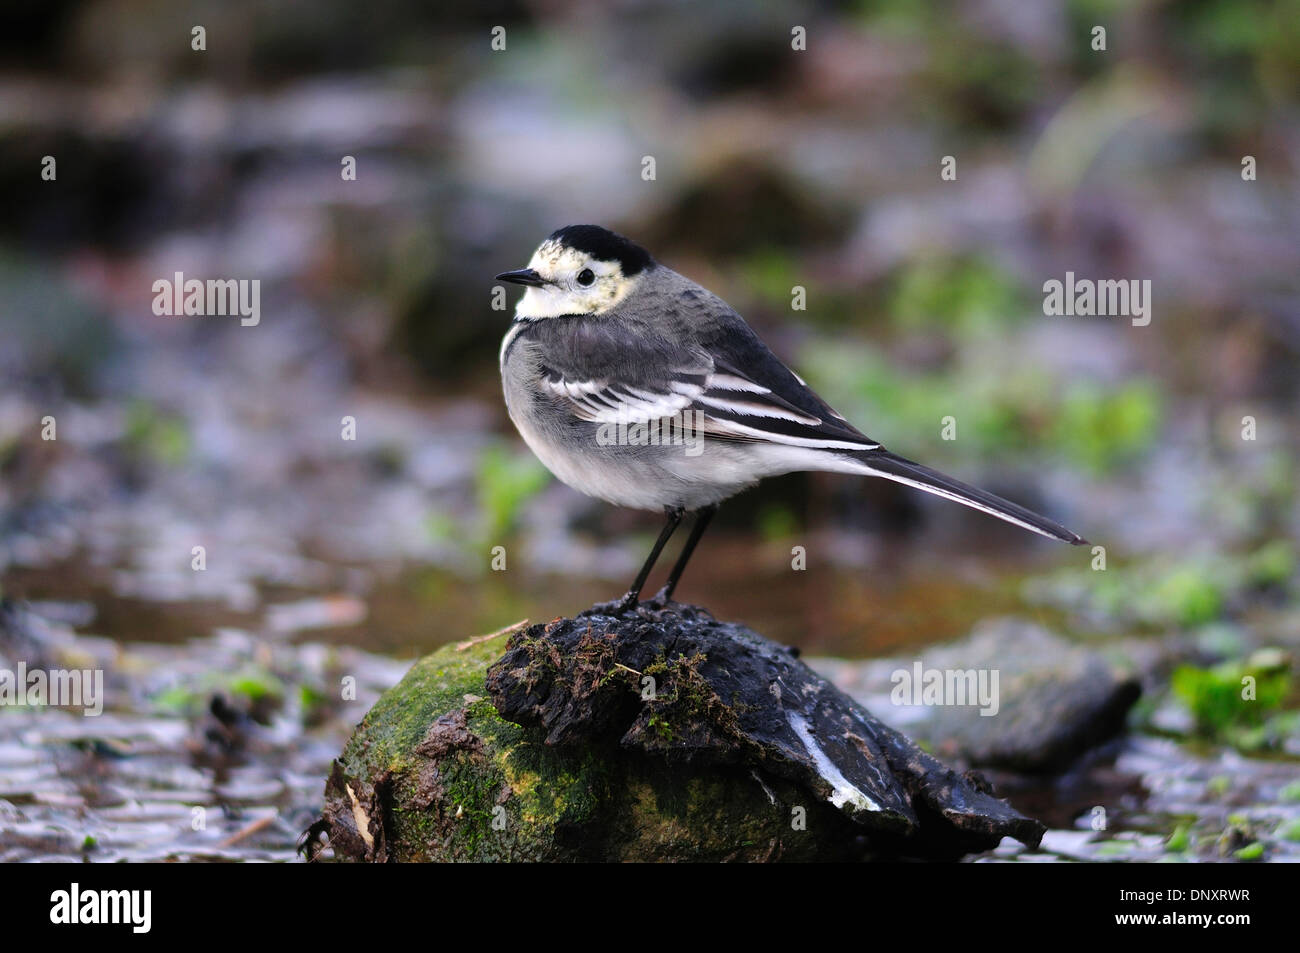 A pied wagtail perched on a stone by a stream UK Stock Photo